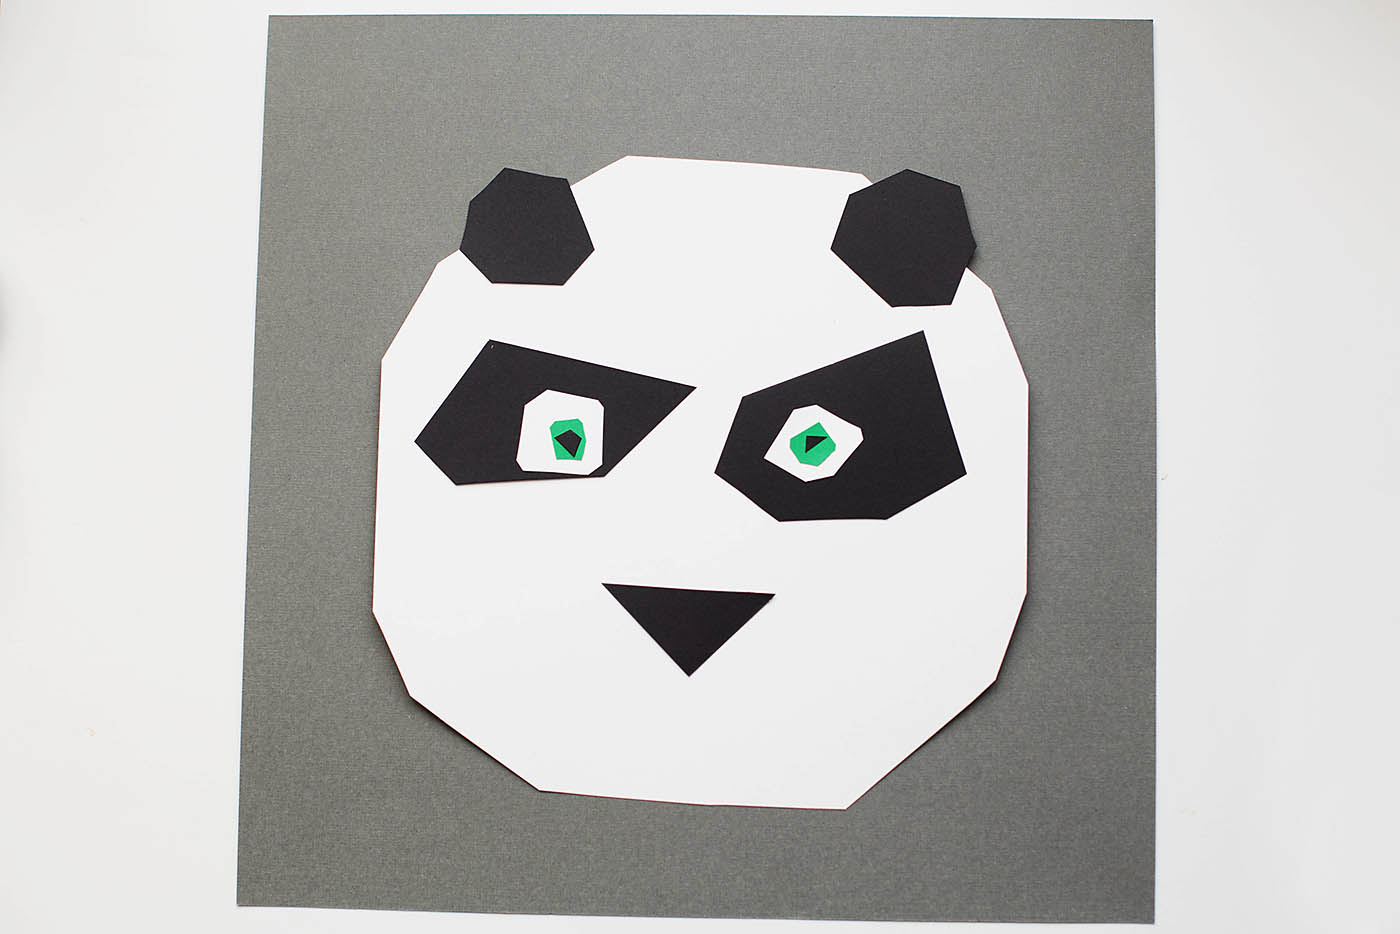 Geometric panda art inspired by Kung Fu Panda - make Po out of easy to cut shapes!